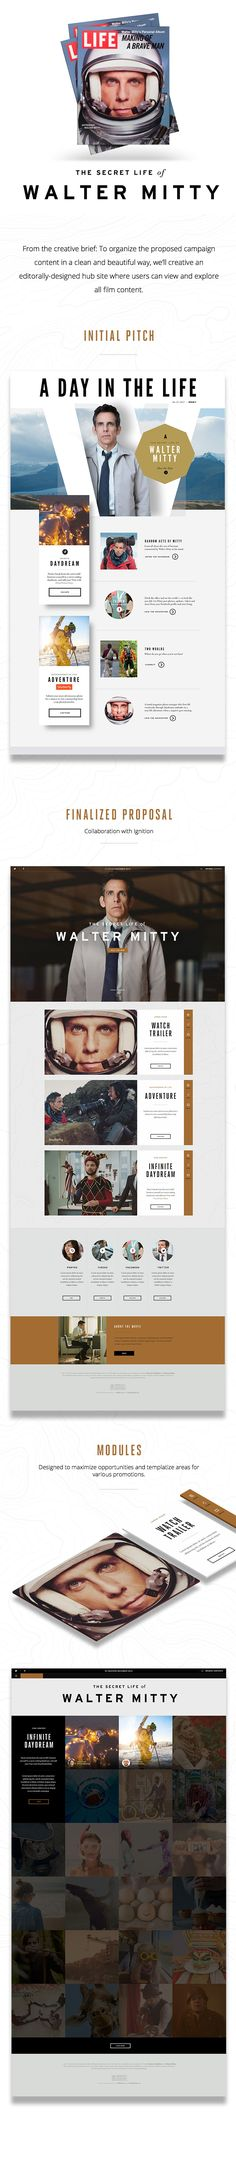 The Secret Life of Walter Mitty - Website Design Proposal. Website Design Inspiration, Graphic Design Inspiration, Web Layout, Layout Design, Design Web, Digital Communication, Life Of Walter Mitty, Ui Web, Email Design